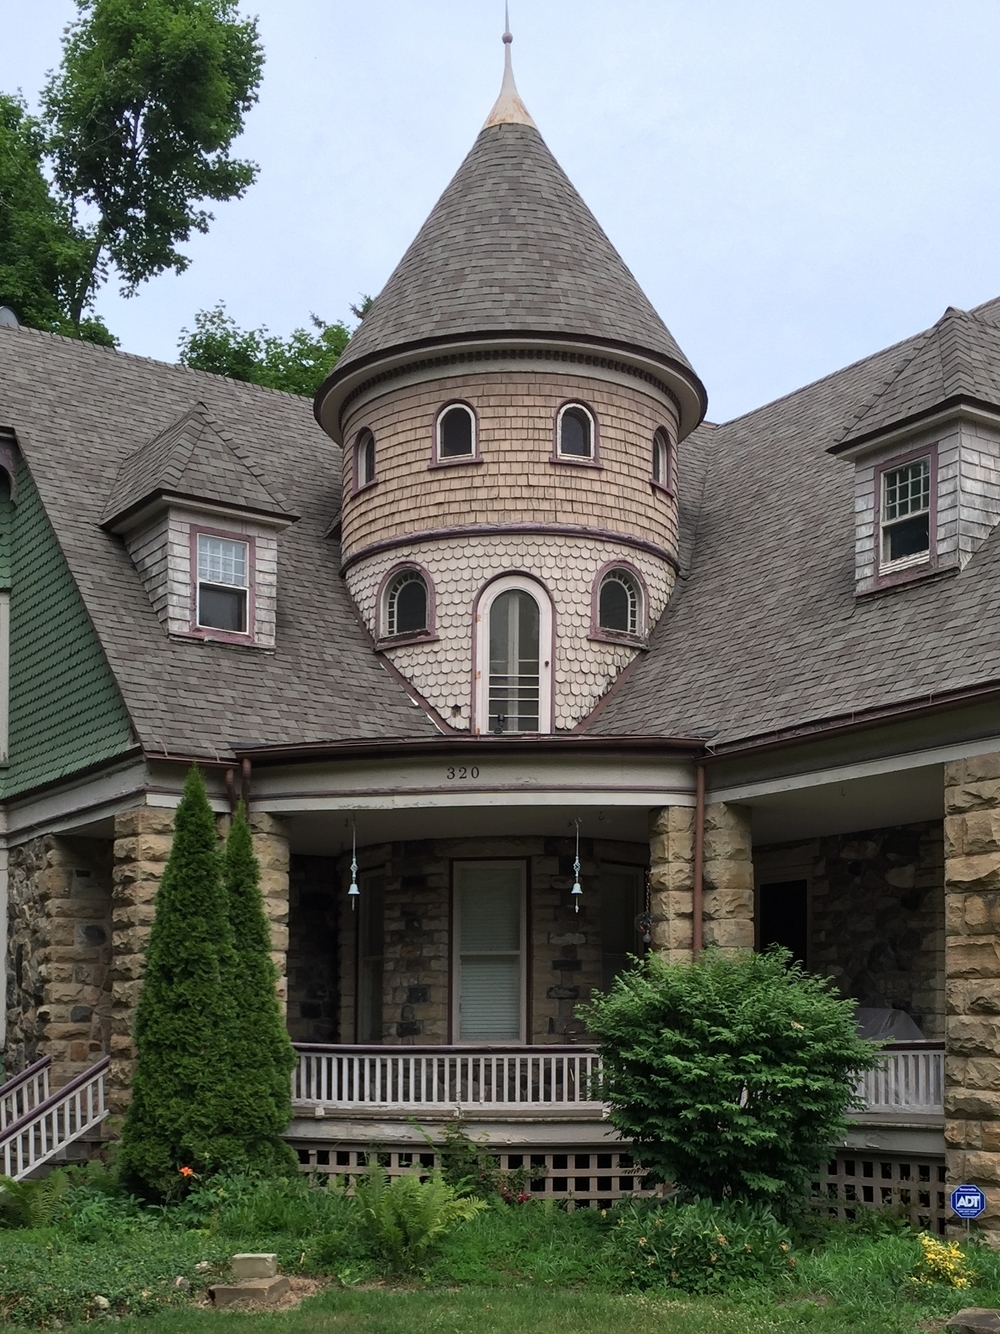 Shingle Style Tower